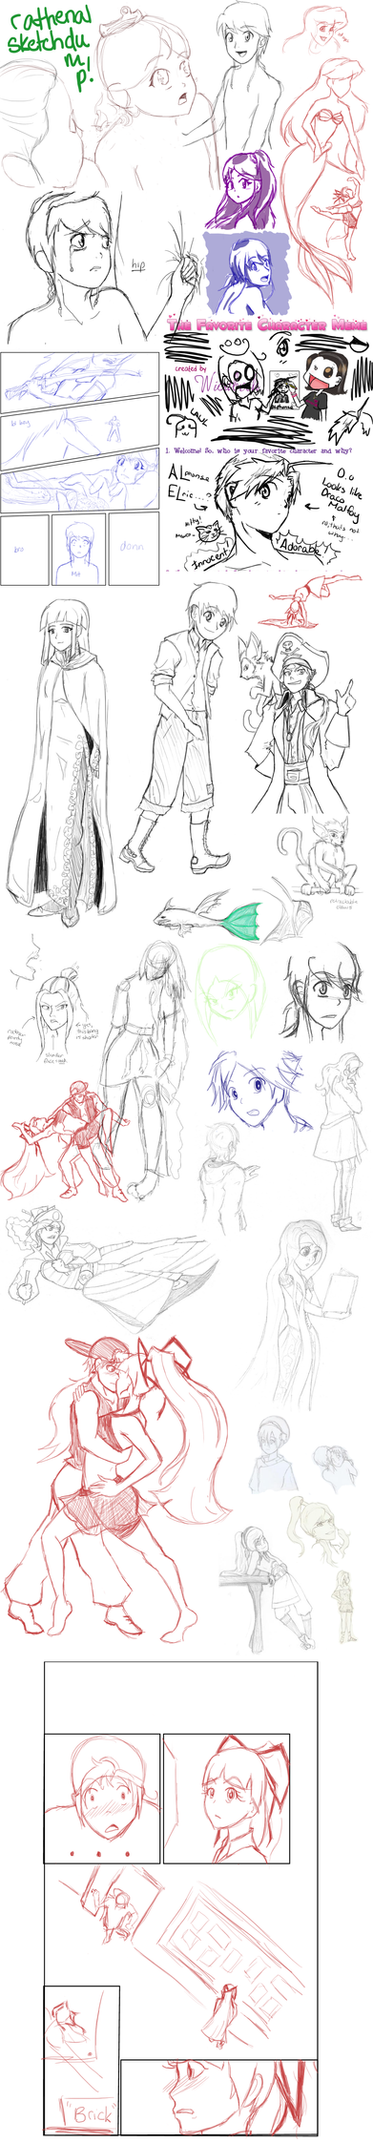 RIDICULOUS Sketchdump '11 by rathenal